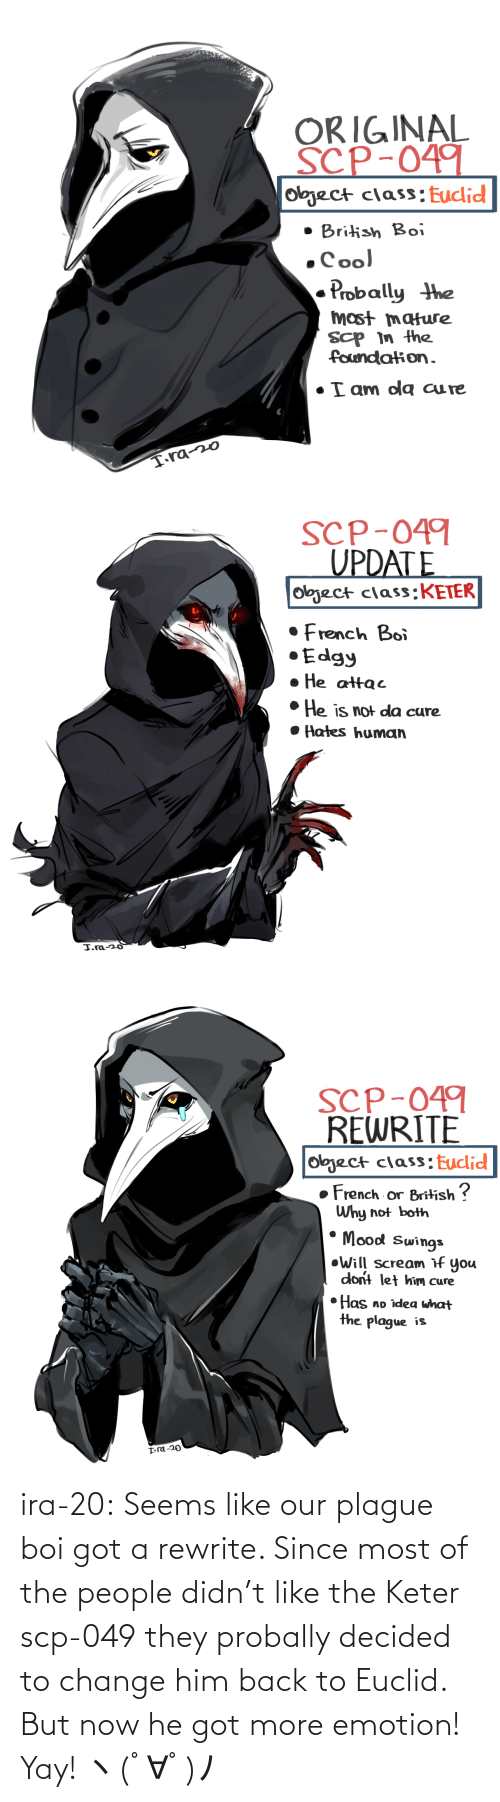 Change: ira-20:  Seems like our plague boi got a rewrite. Since most of the people didn't like the Keter scp-049 they probally decided to change him back to Euclid. But now he got more emotion! Yay! ヽ(゚∀゚)ノ